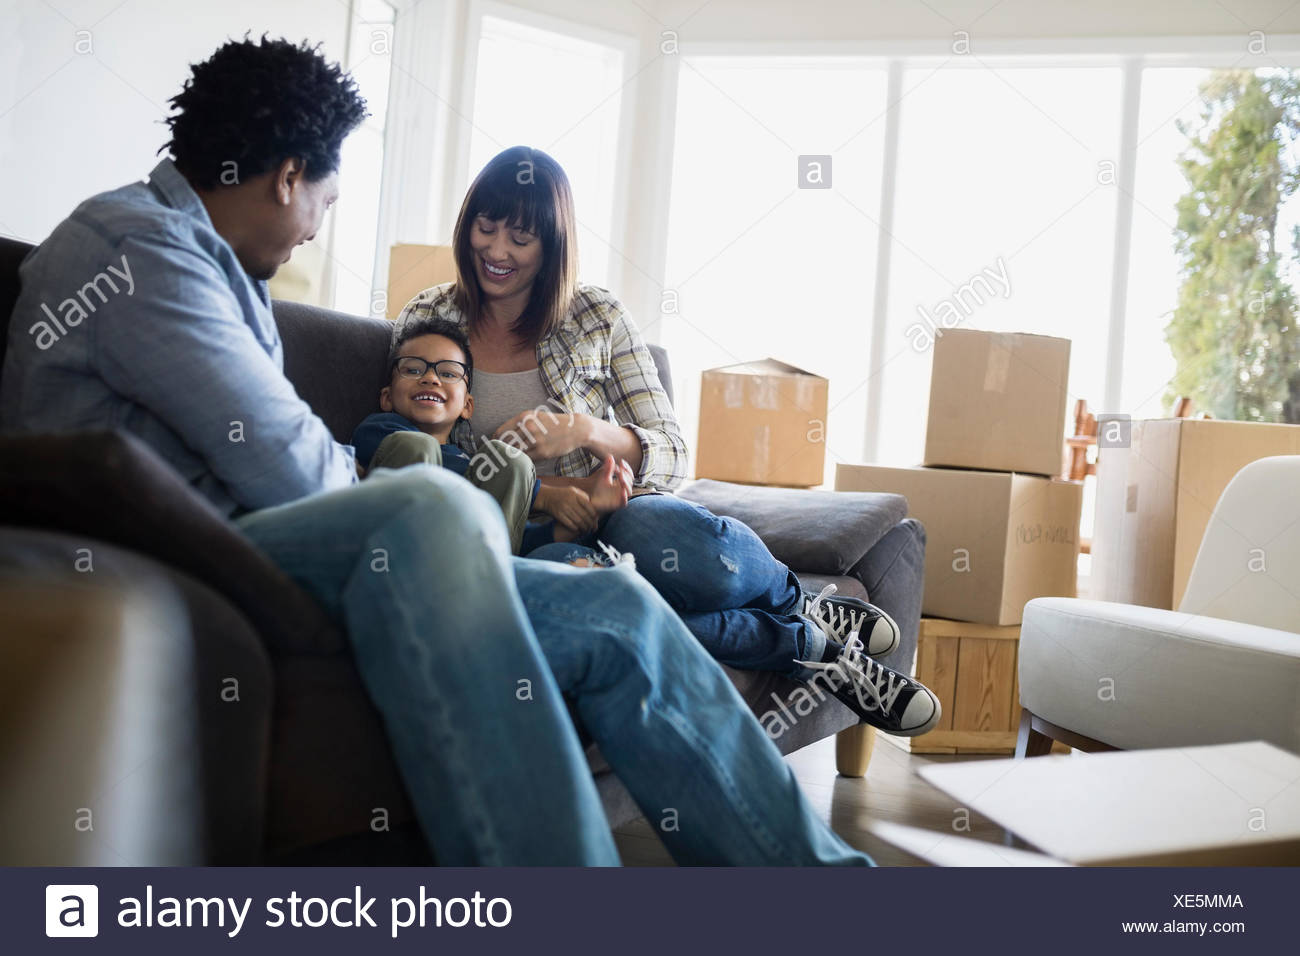 Moving boxes surrounding family relaxing on sofa - Stock Image